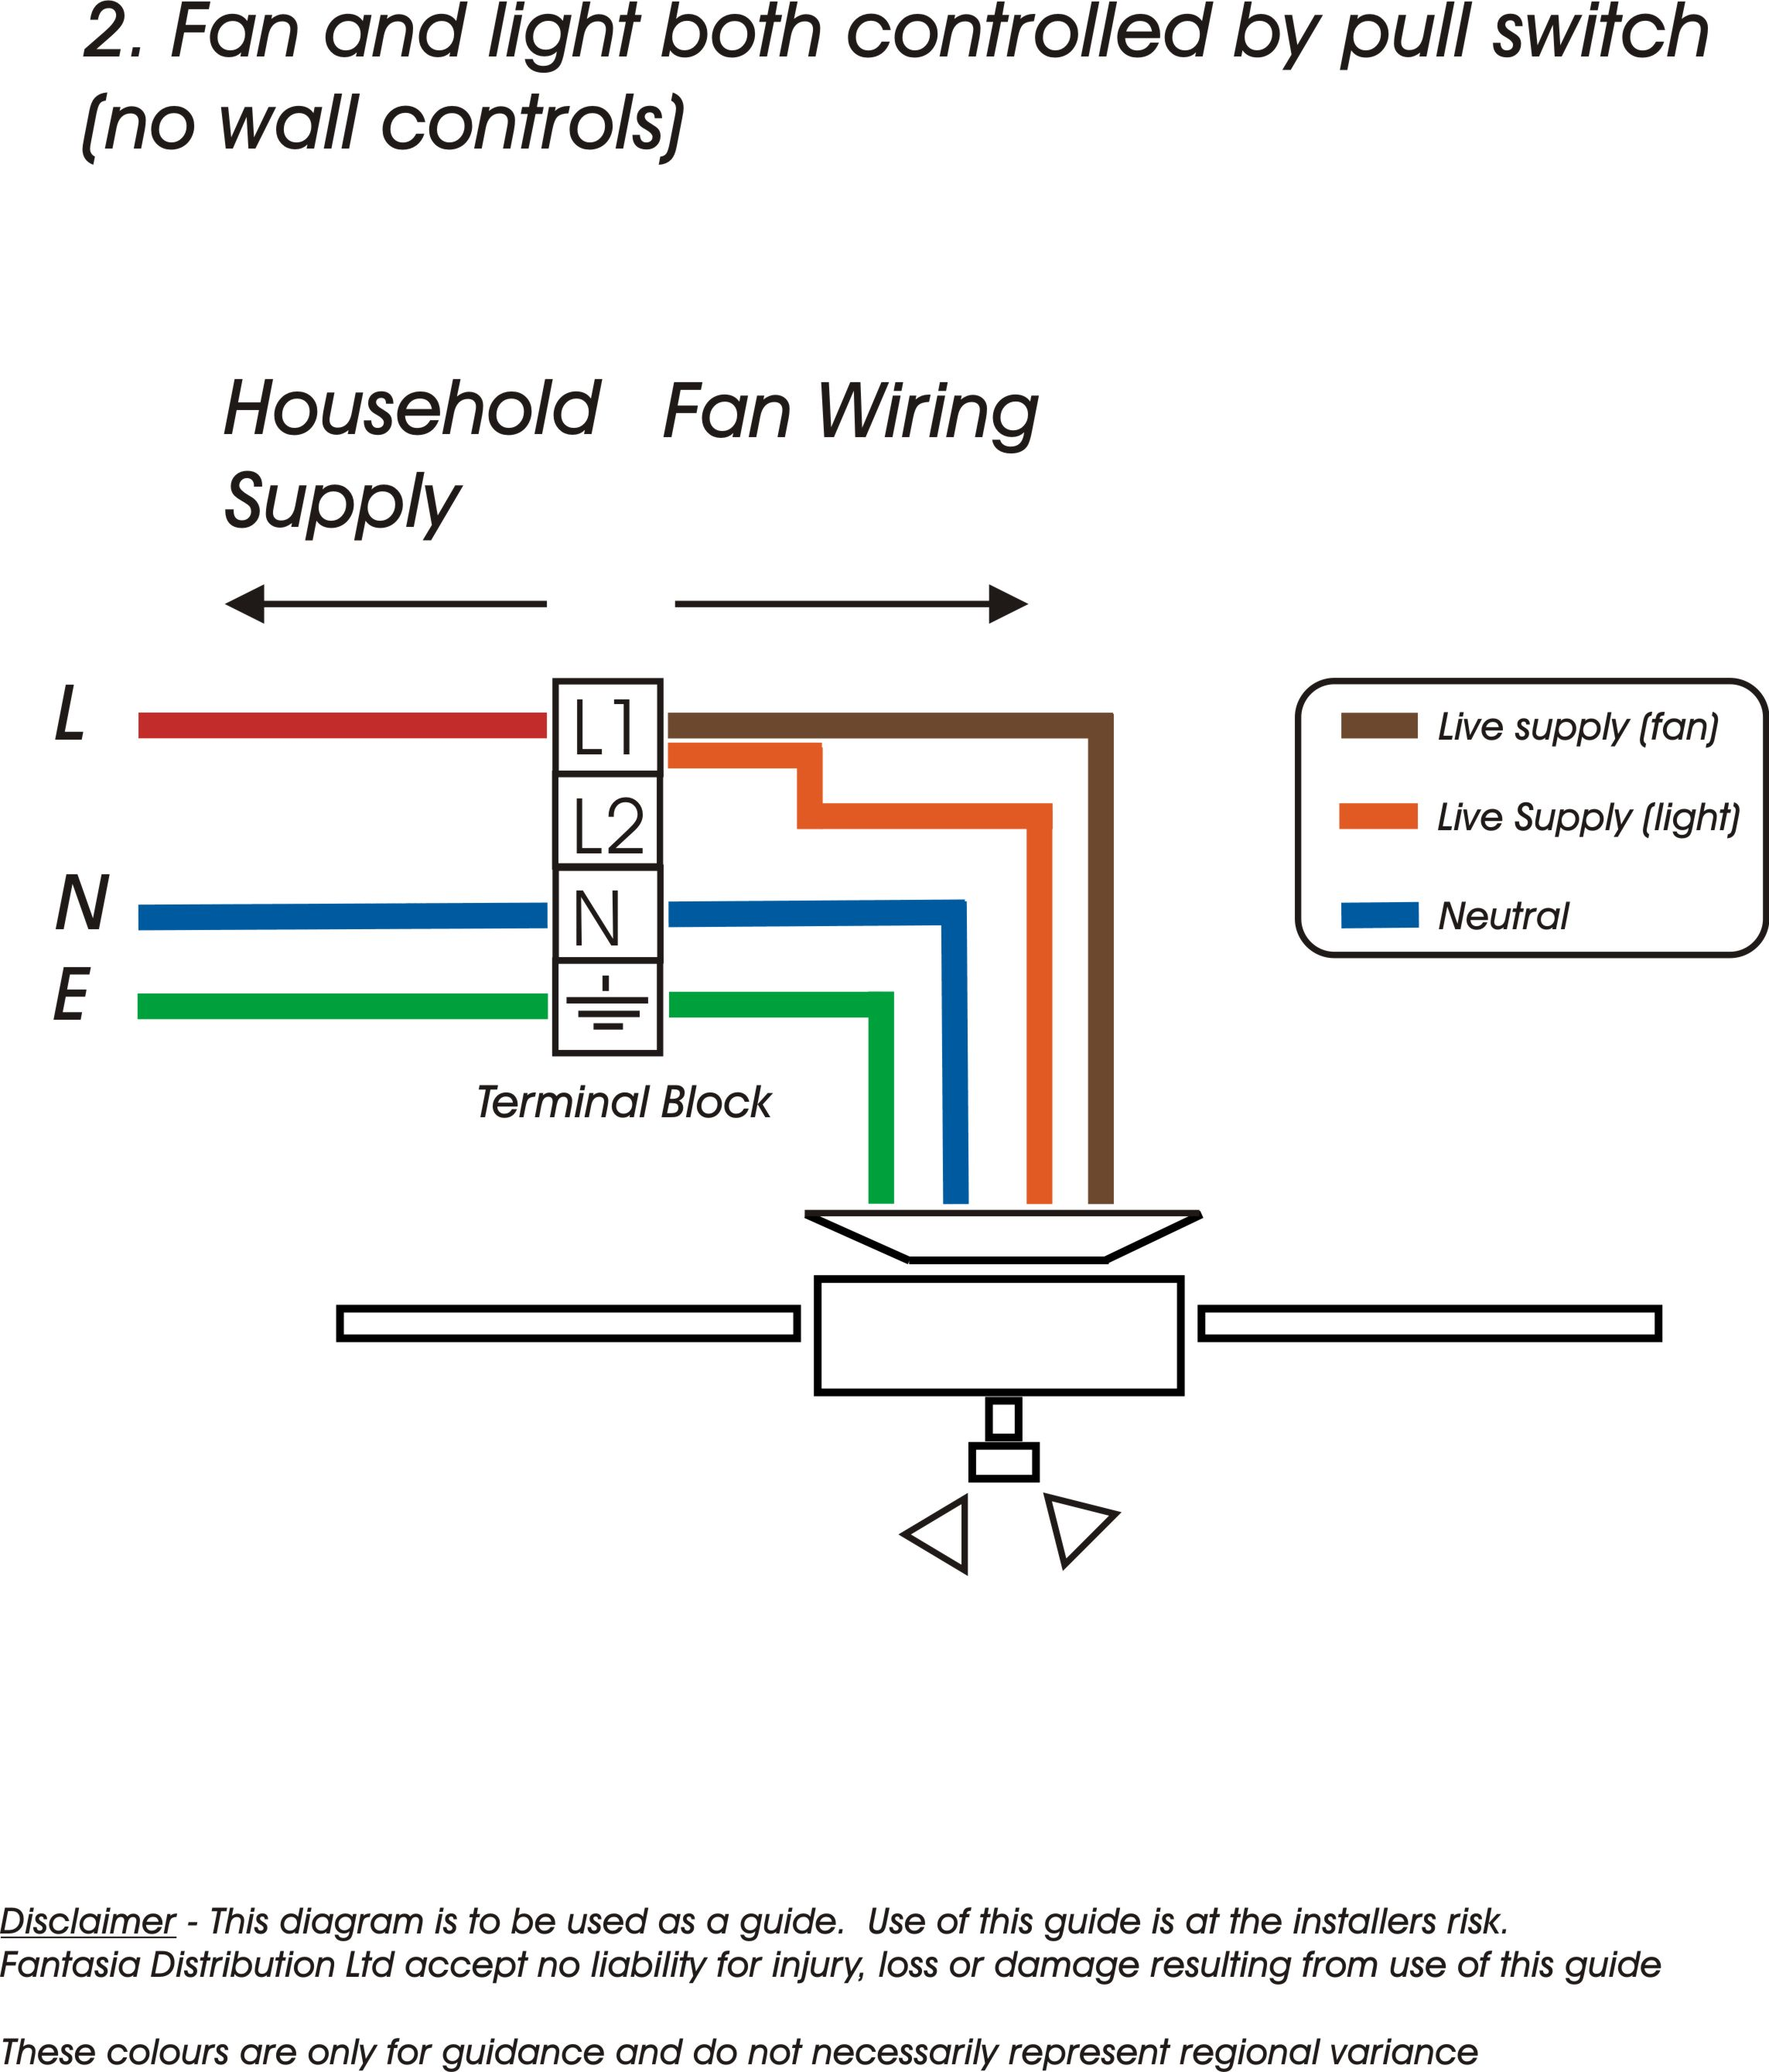 wiring ceiling fans 2 hampton bay ceiling fan motor wiring diagram integralbook com hampton bay ceiling fan wiring diagram red wire at virtualis.co